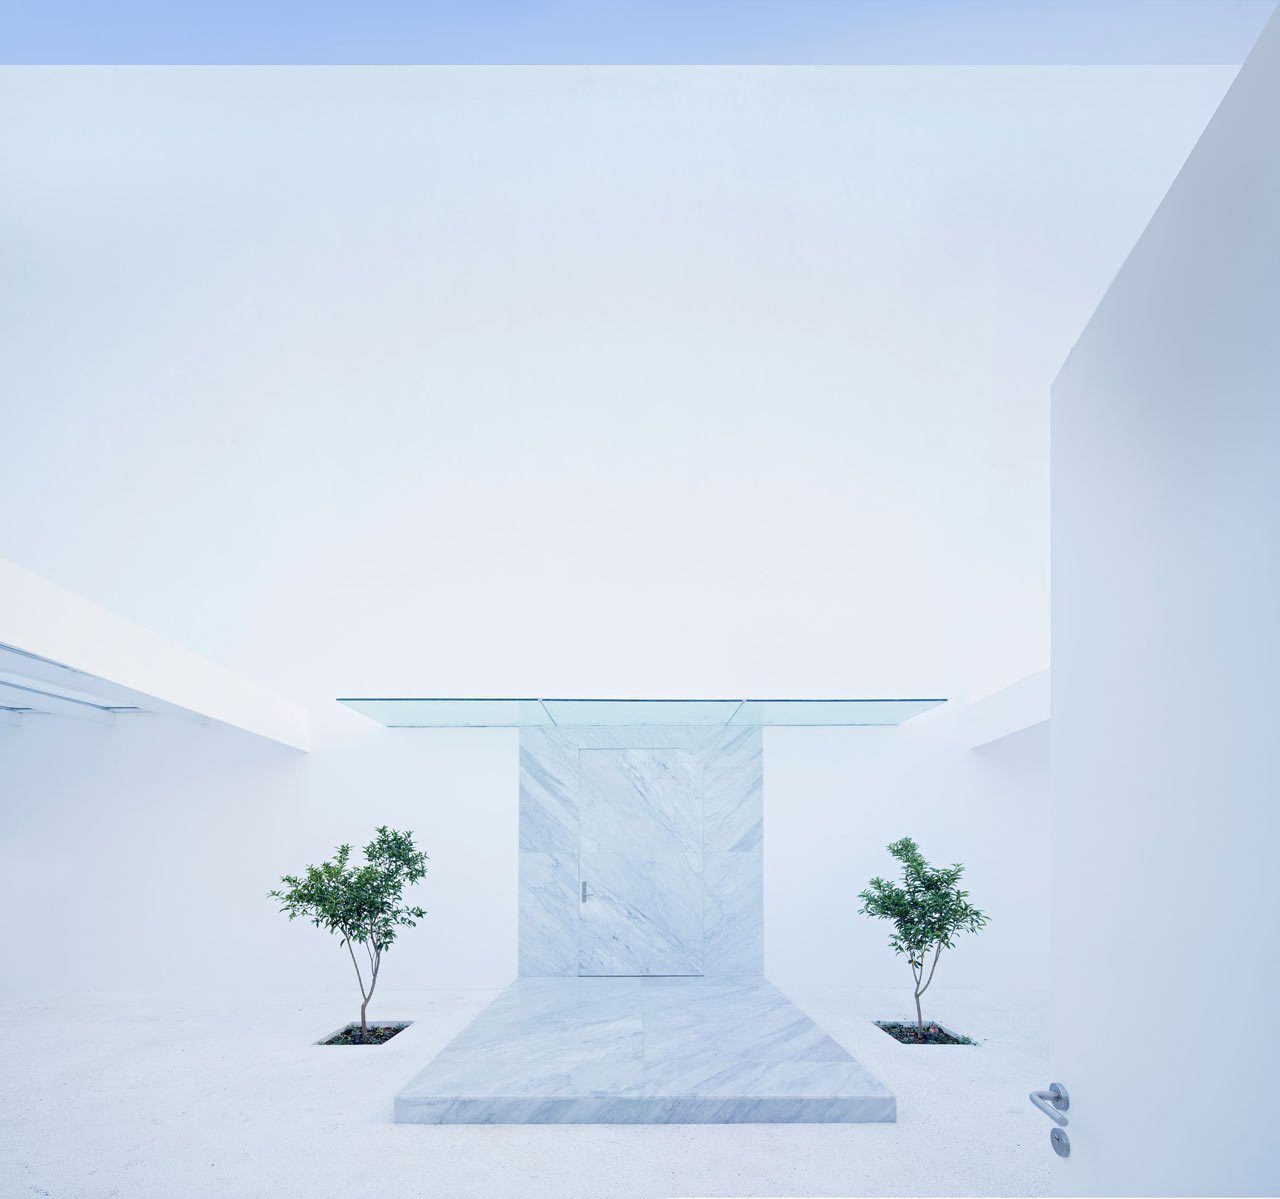 Photo 2 of 23 in Domus Aurea: A Modern, Mexican Residence with Mountain Views